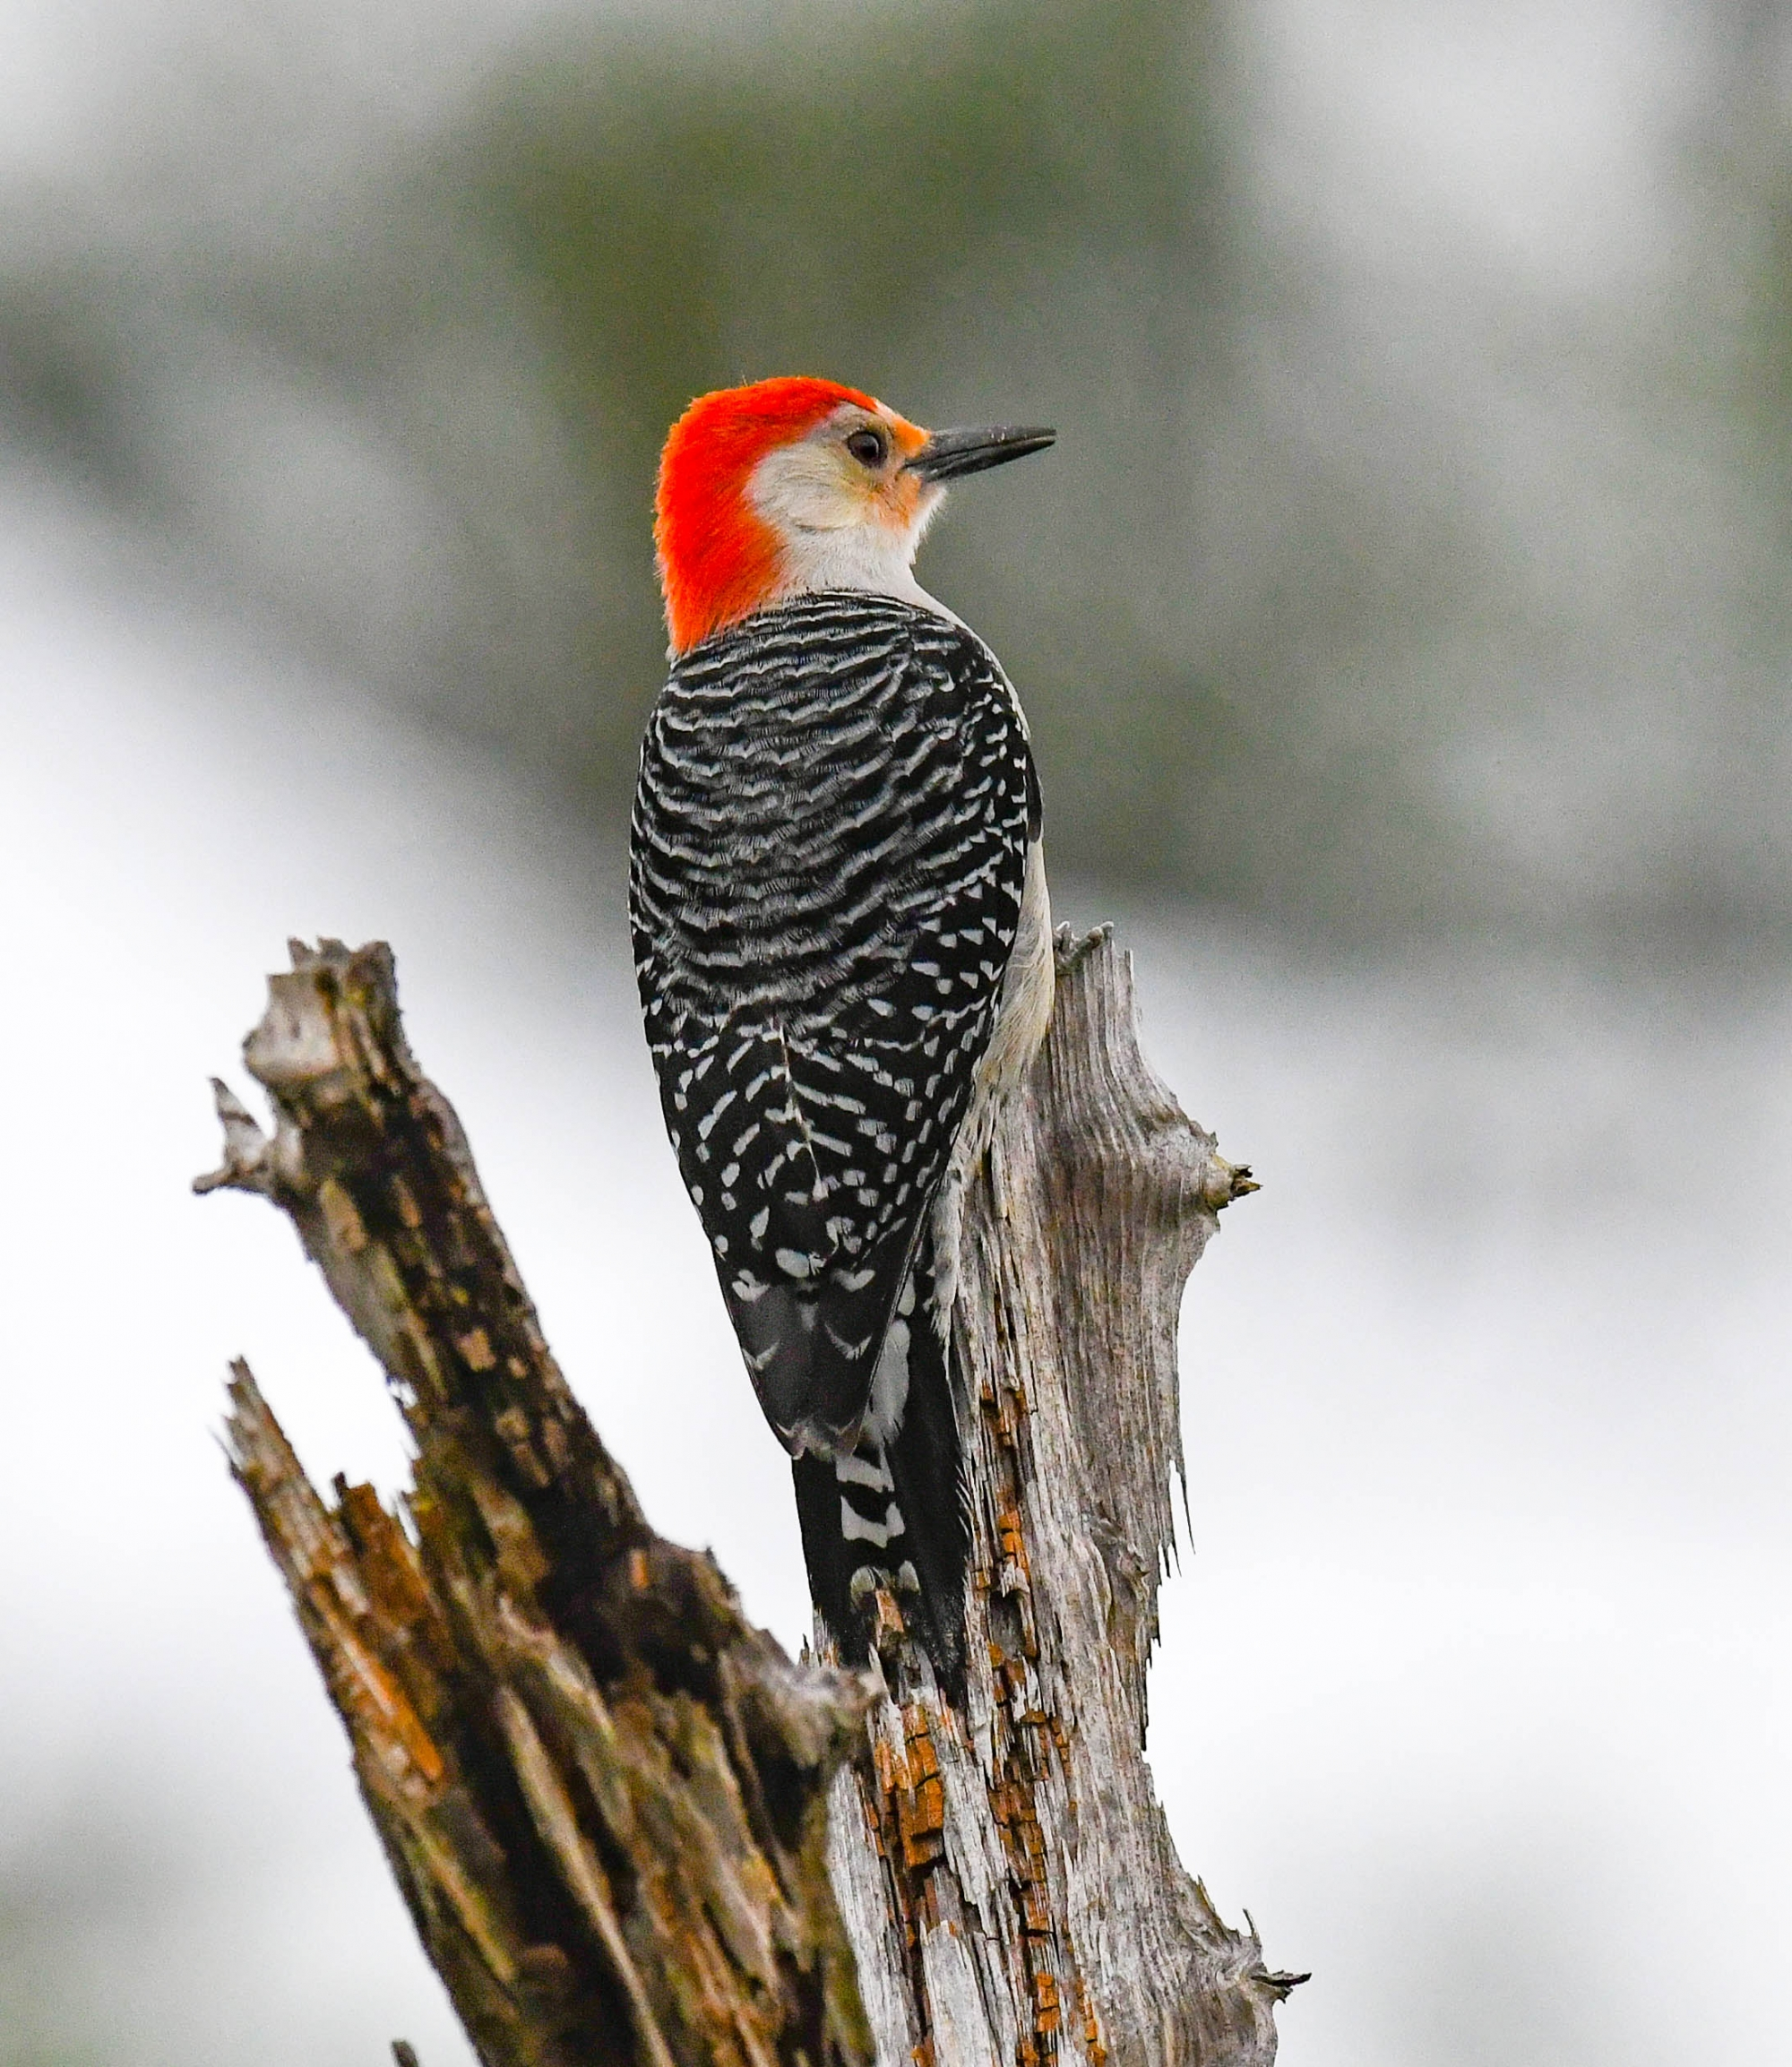 A Red-bellied Woodpecker surveys its territory